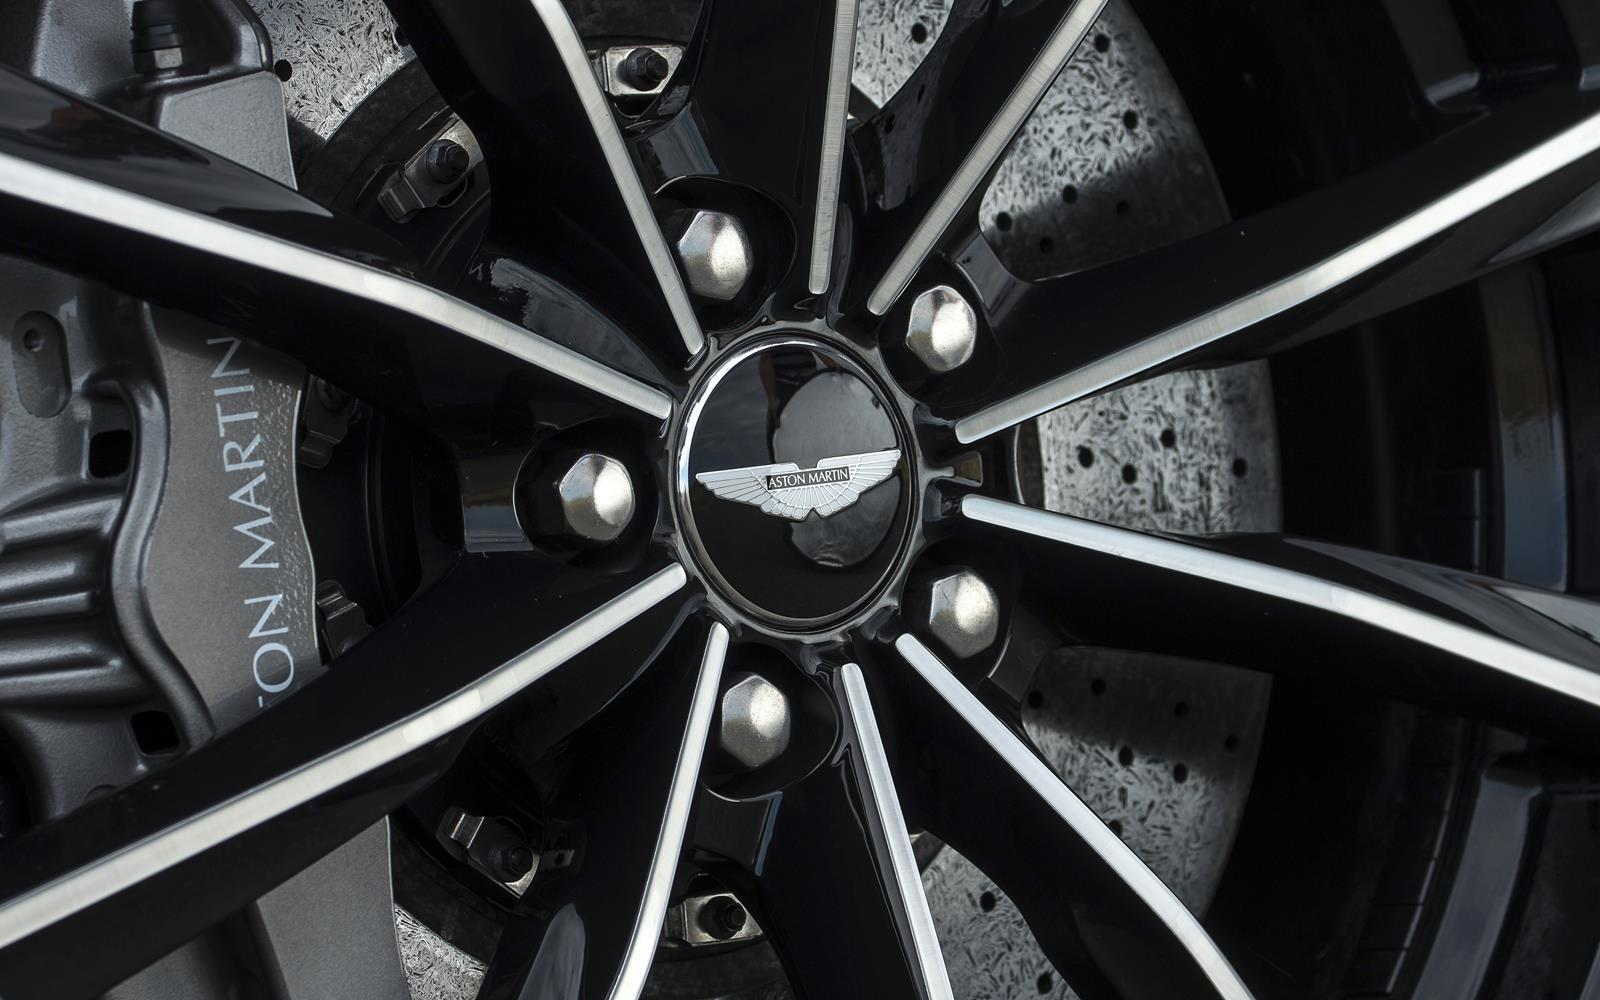 Aston Martin DB9 GT 2015 Wheel detail